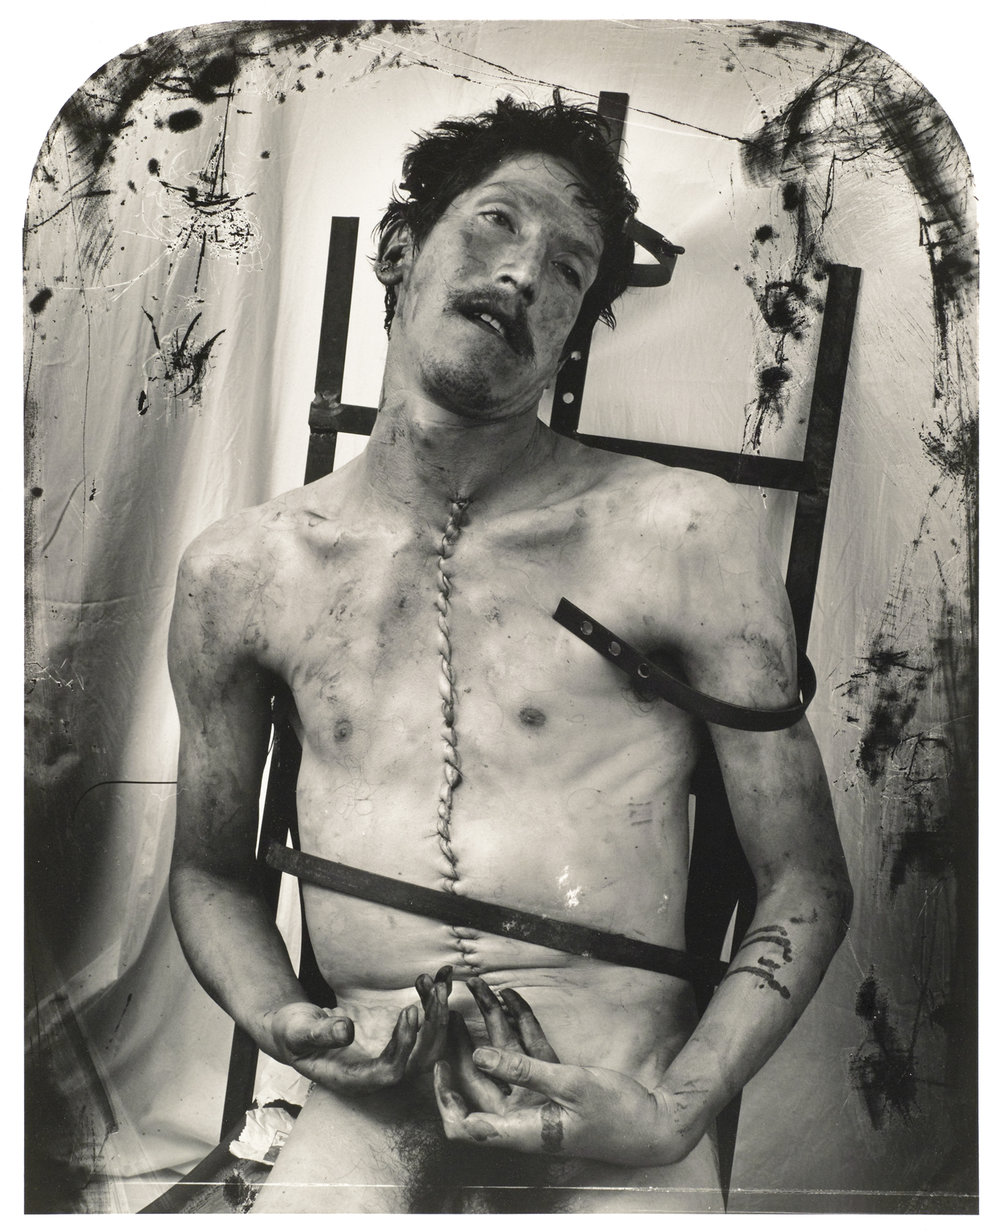 Joel-Peter Witkin:  Glassman, Mexico City  (1994)